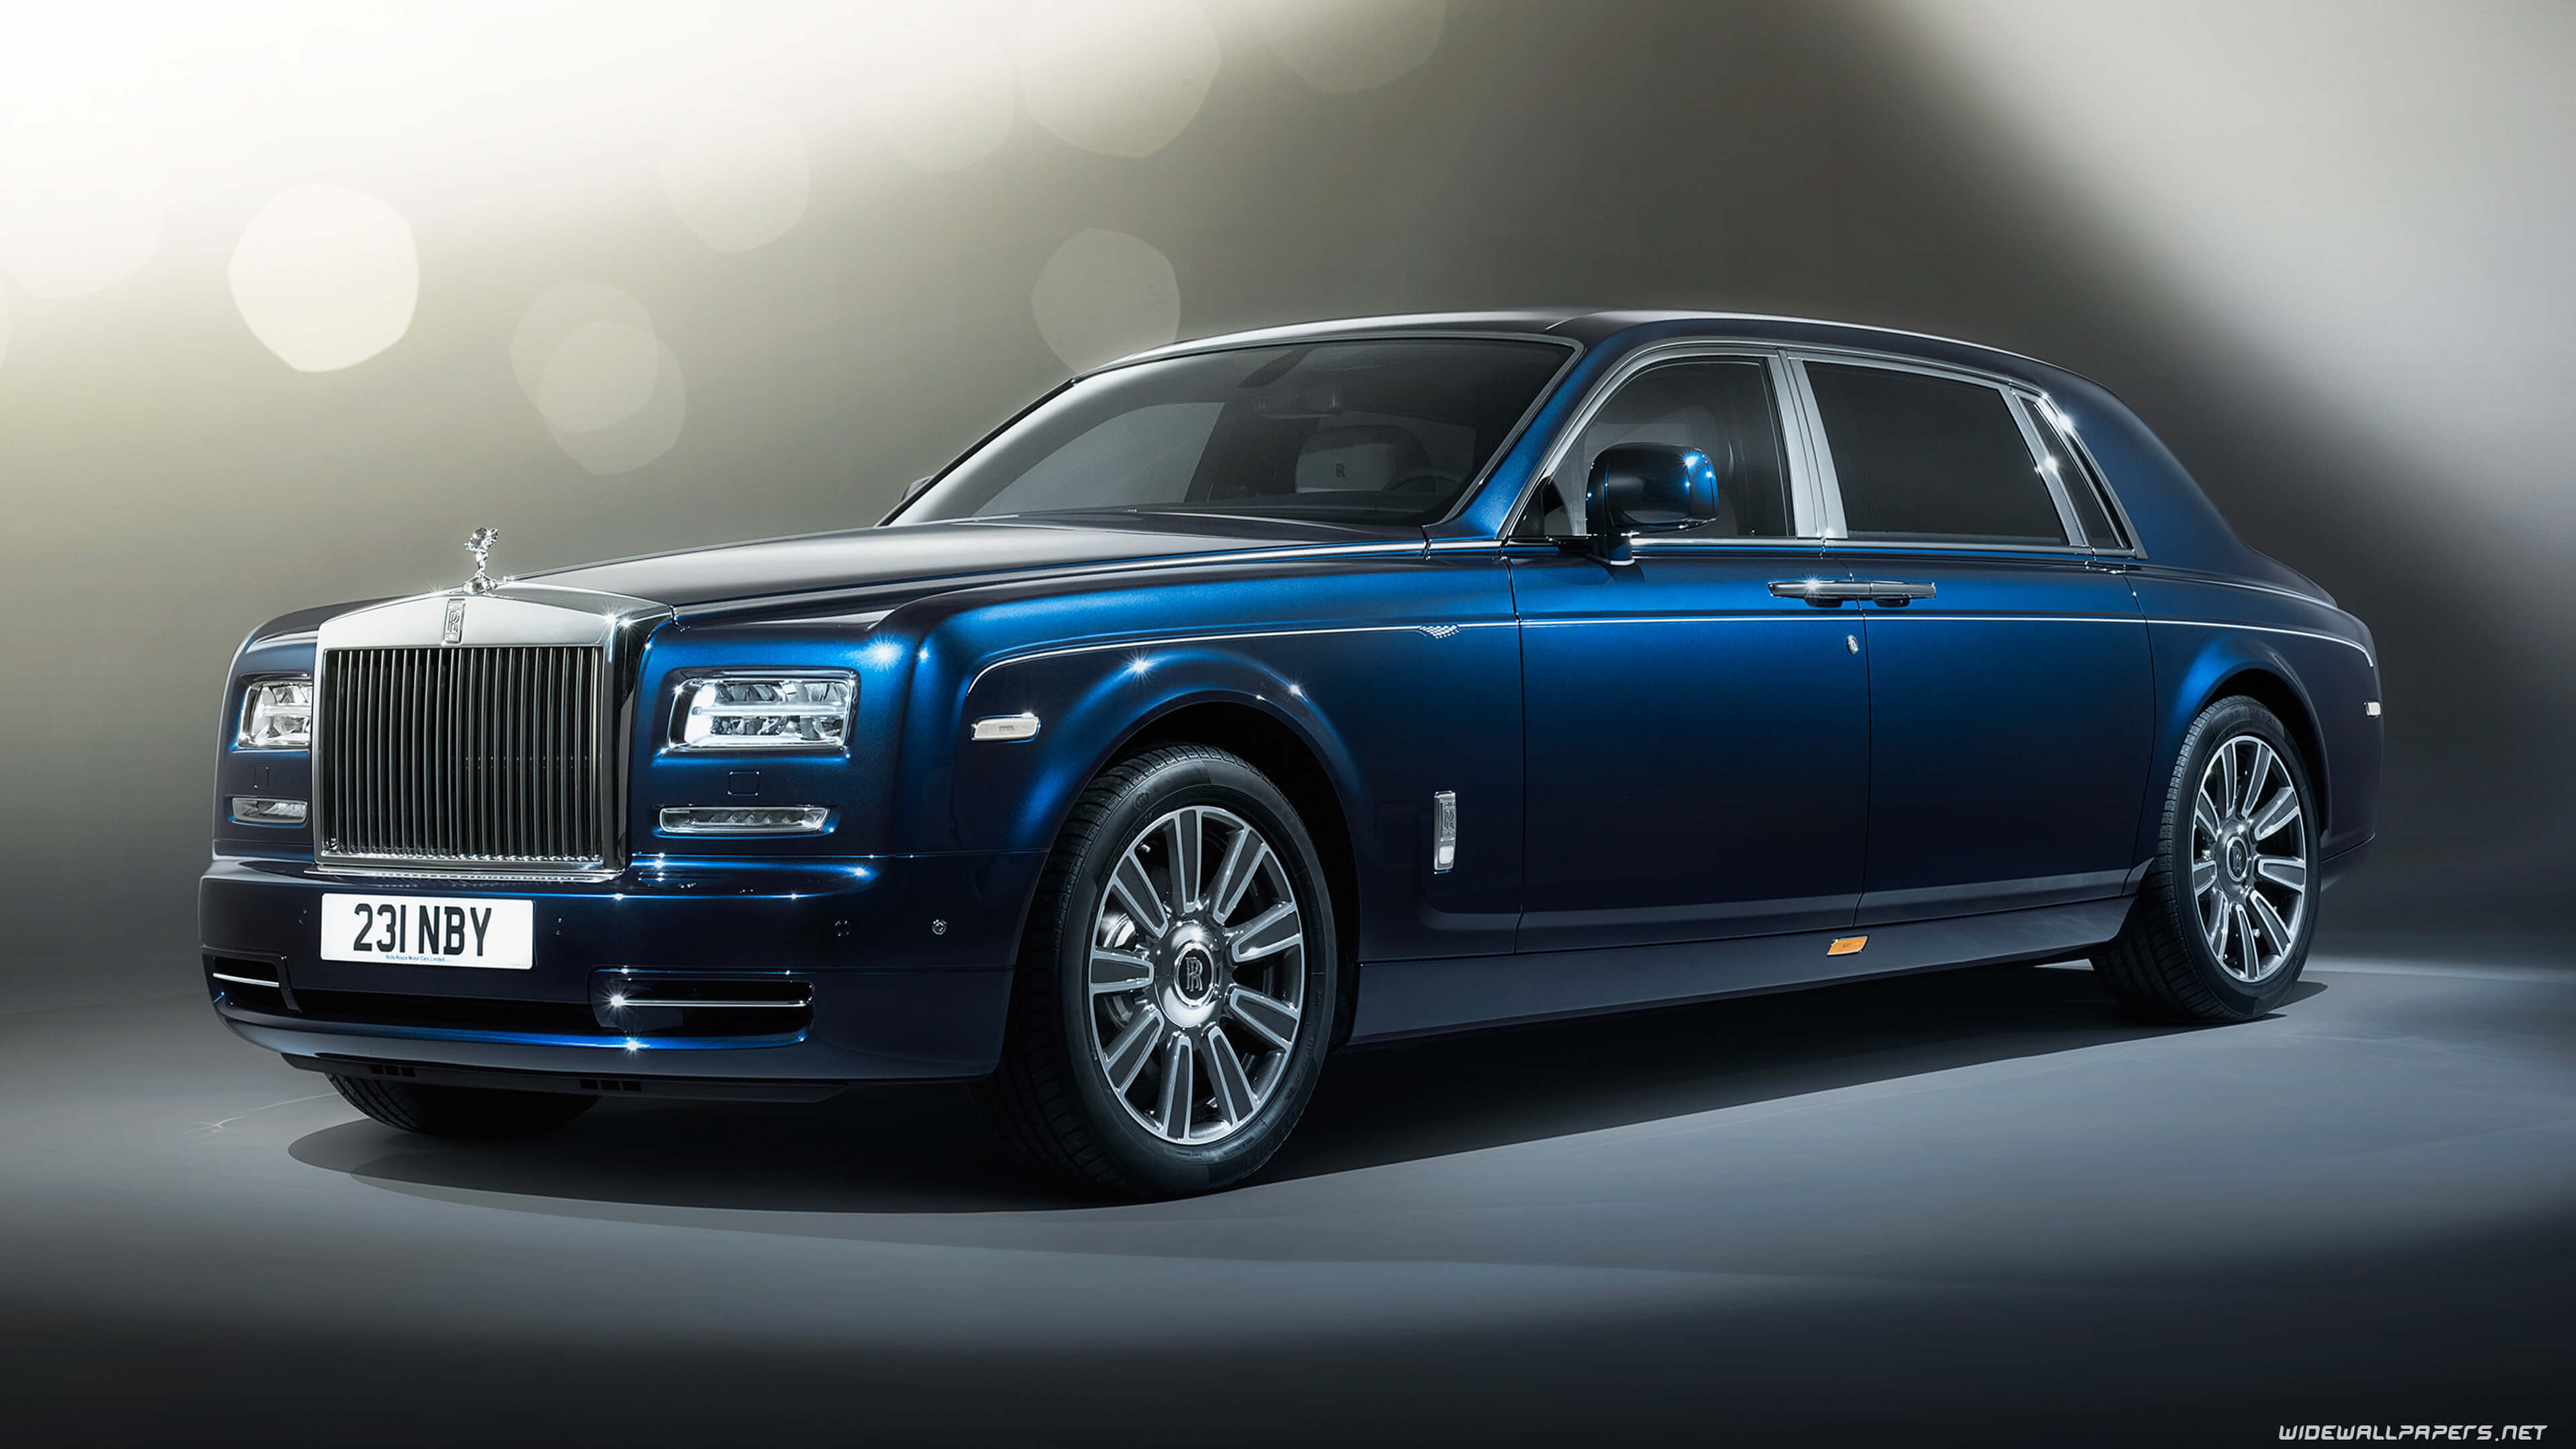 Blue 2017 Rolls Royce Phantom UHD 4K Wallpaper | Pixelz